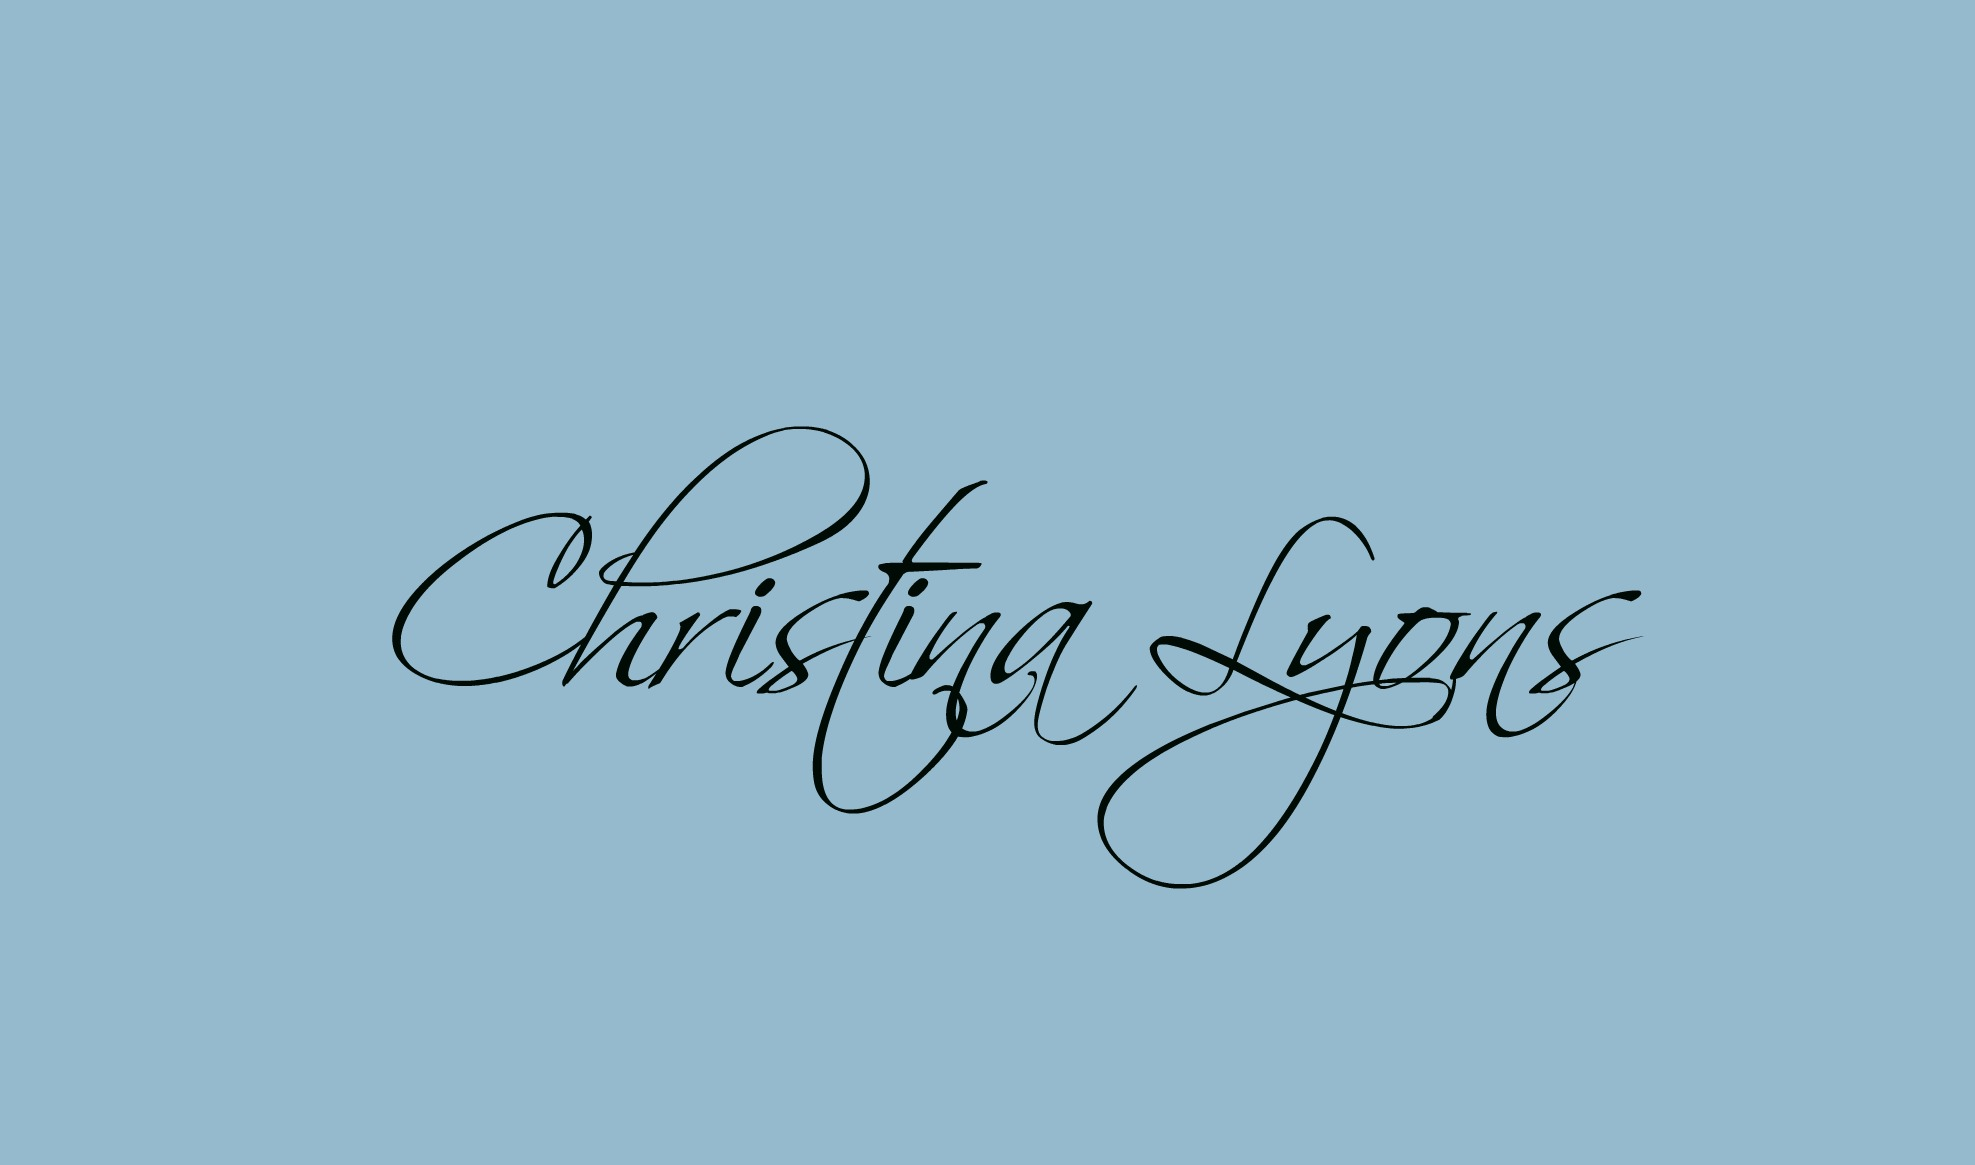 Christina Lyons's Signature